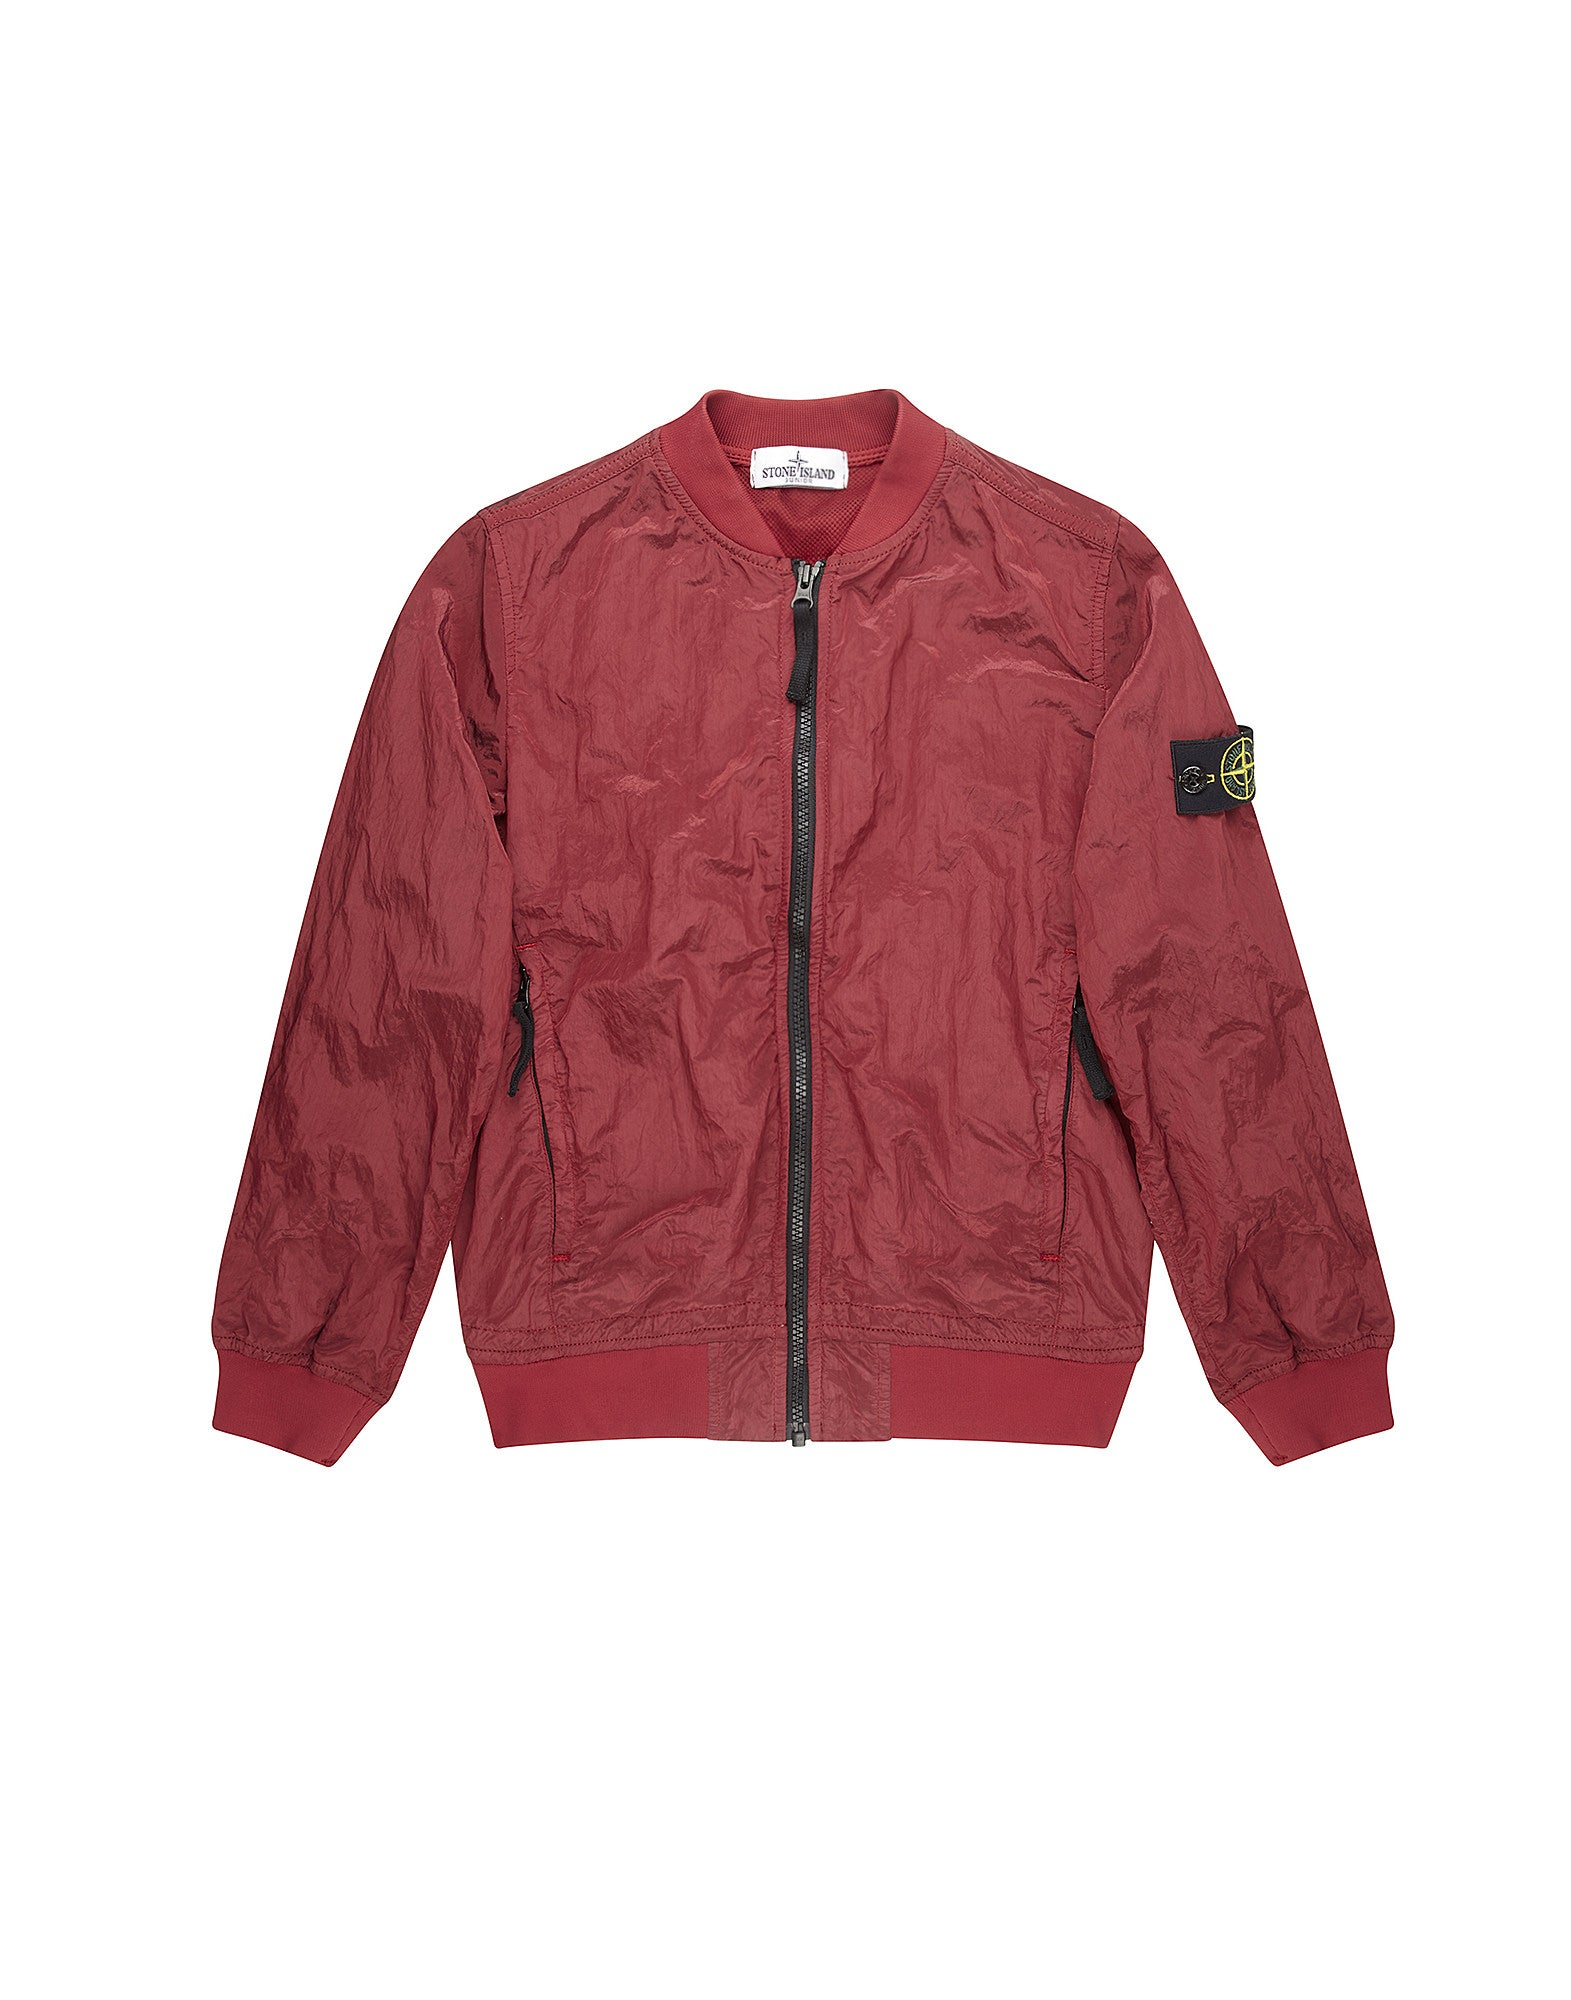 40513 NYLON METAL Bomber jacket in Red